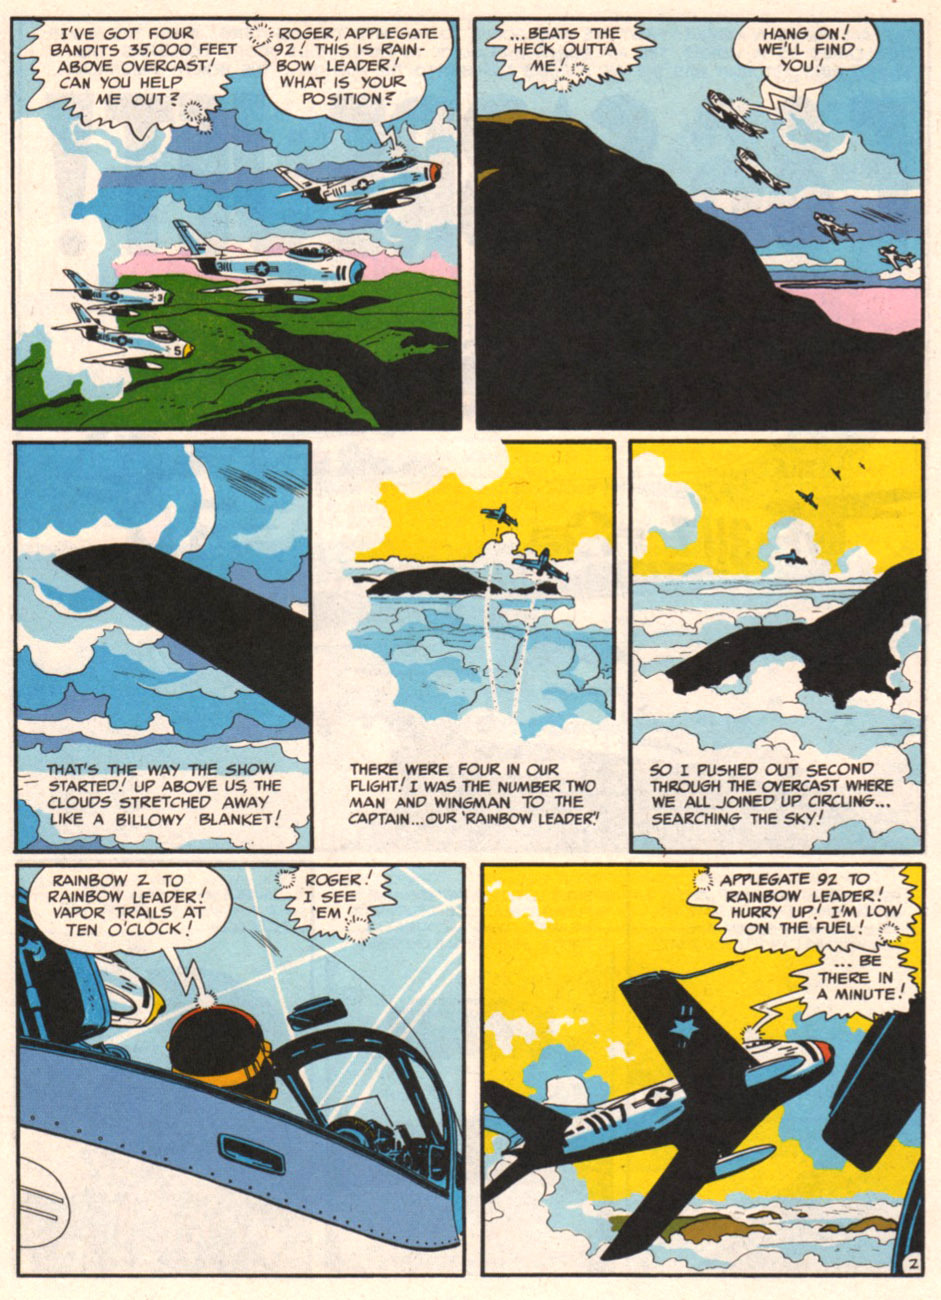 tothlove:    F86 Sabre Jet - Harvey Kurtzman and Alex Toth page 2